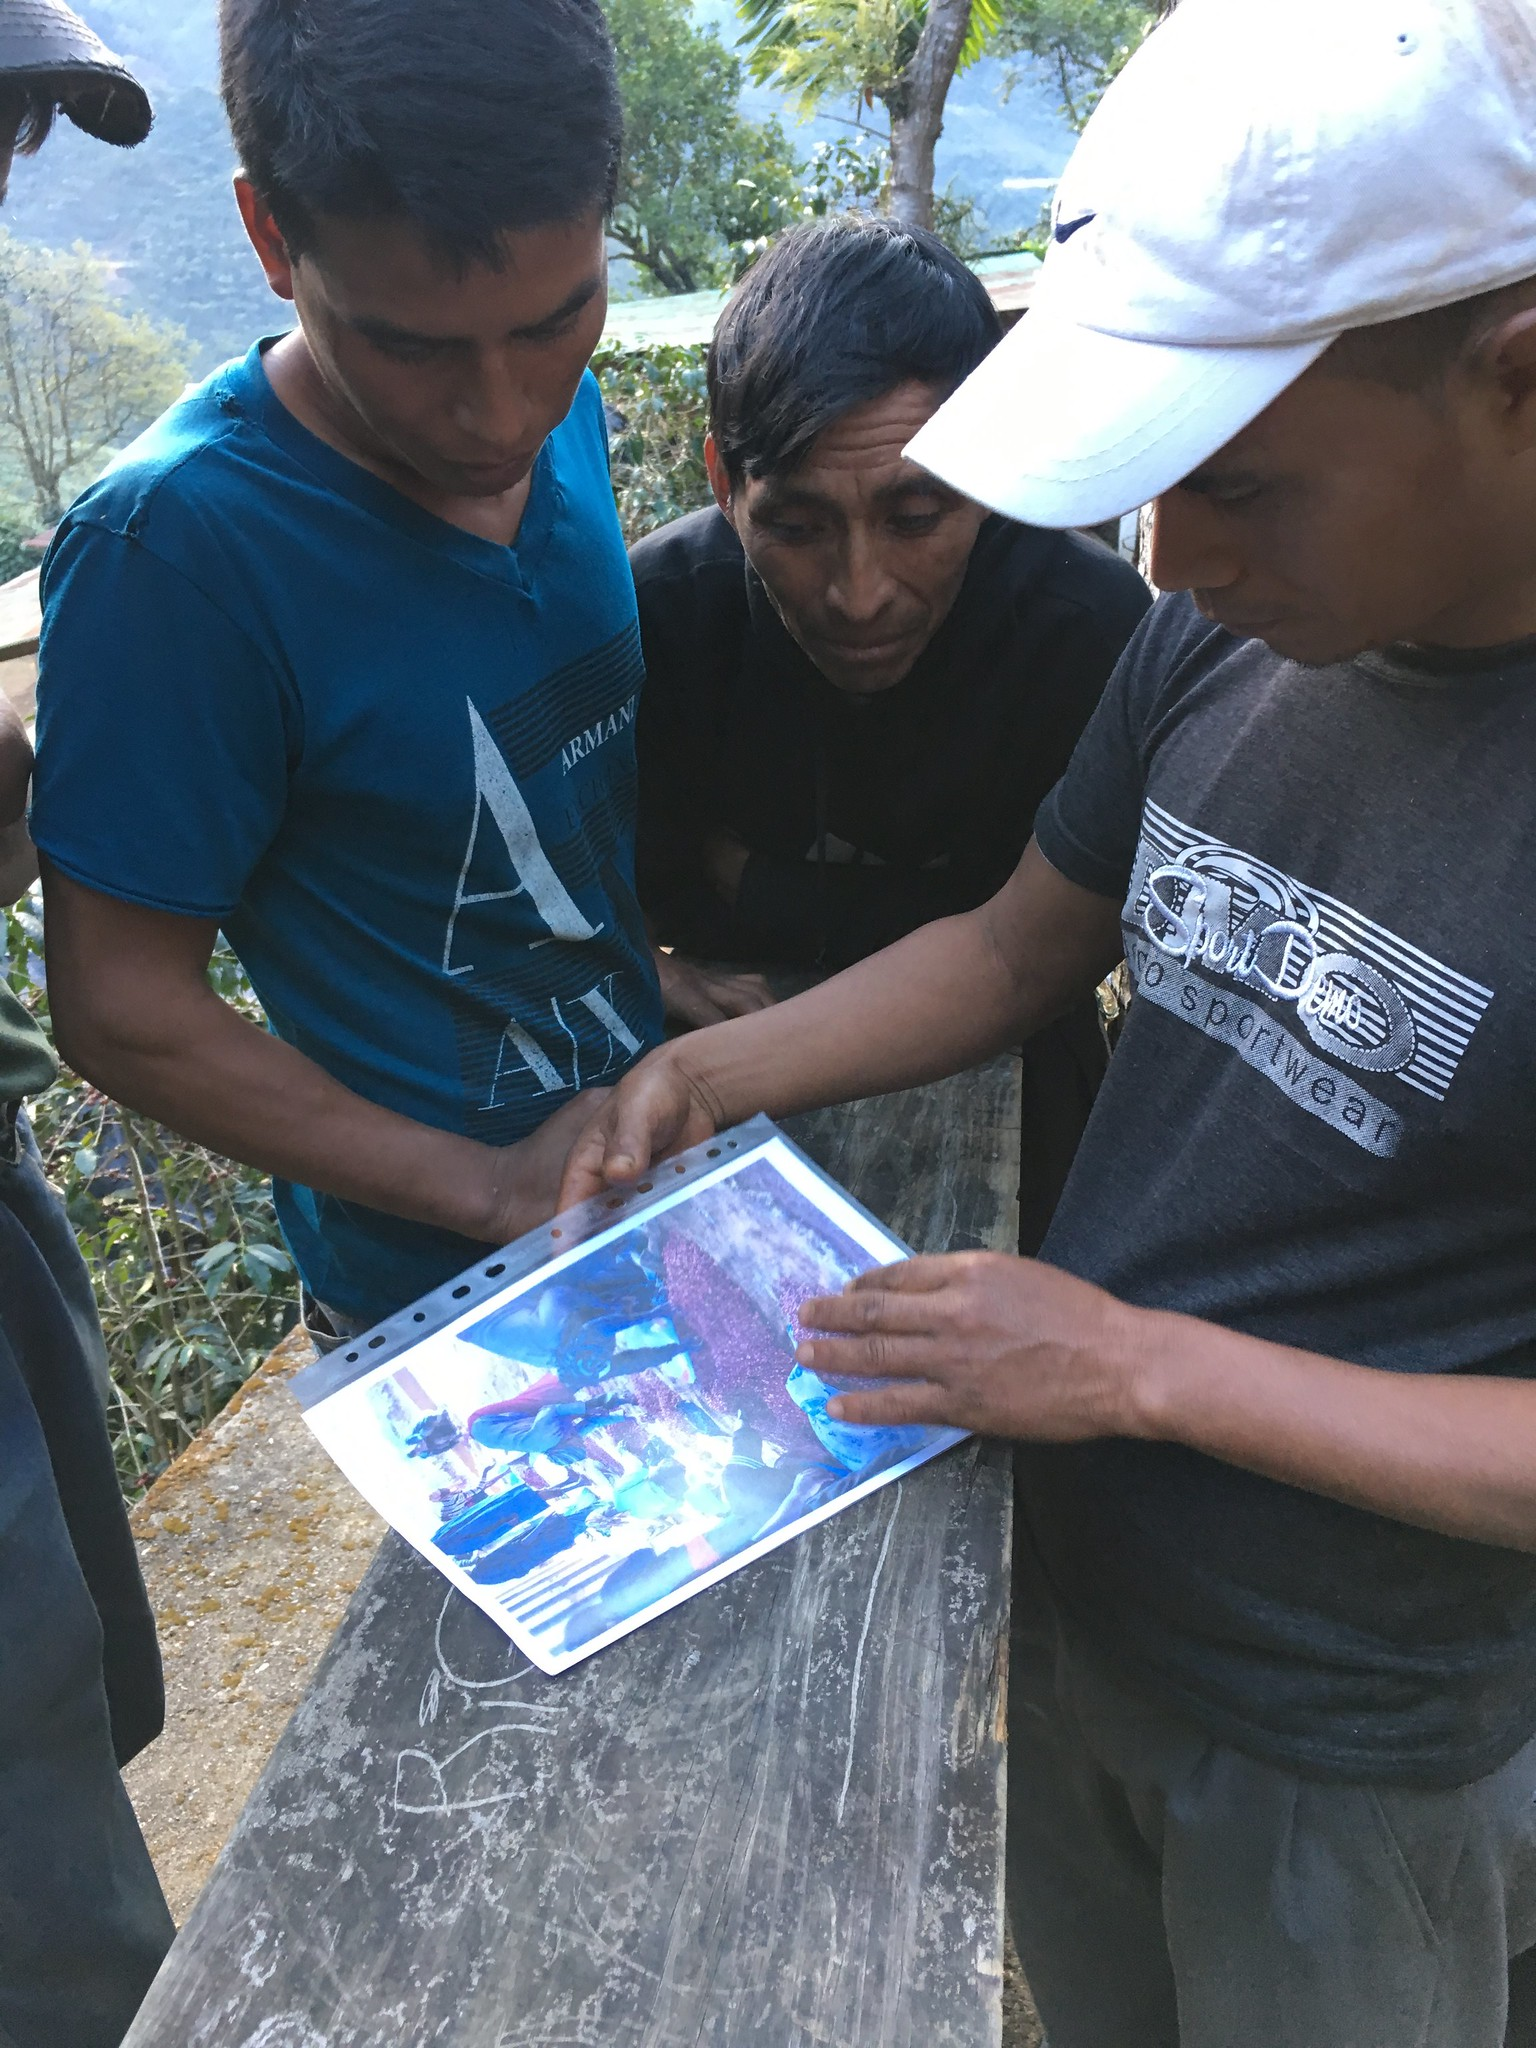 Pickers at FVH looking at pictures of ripe cherries